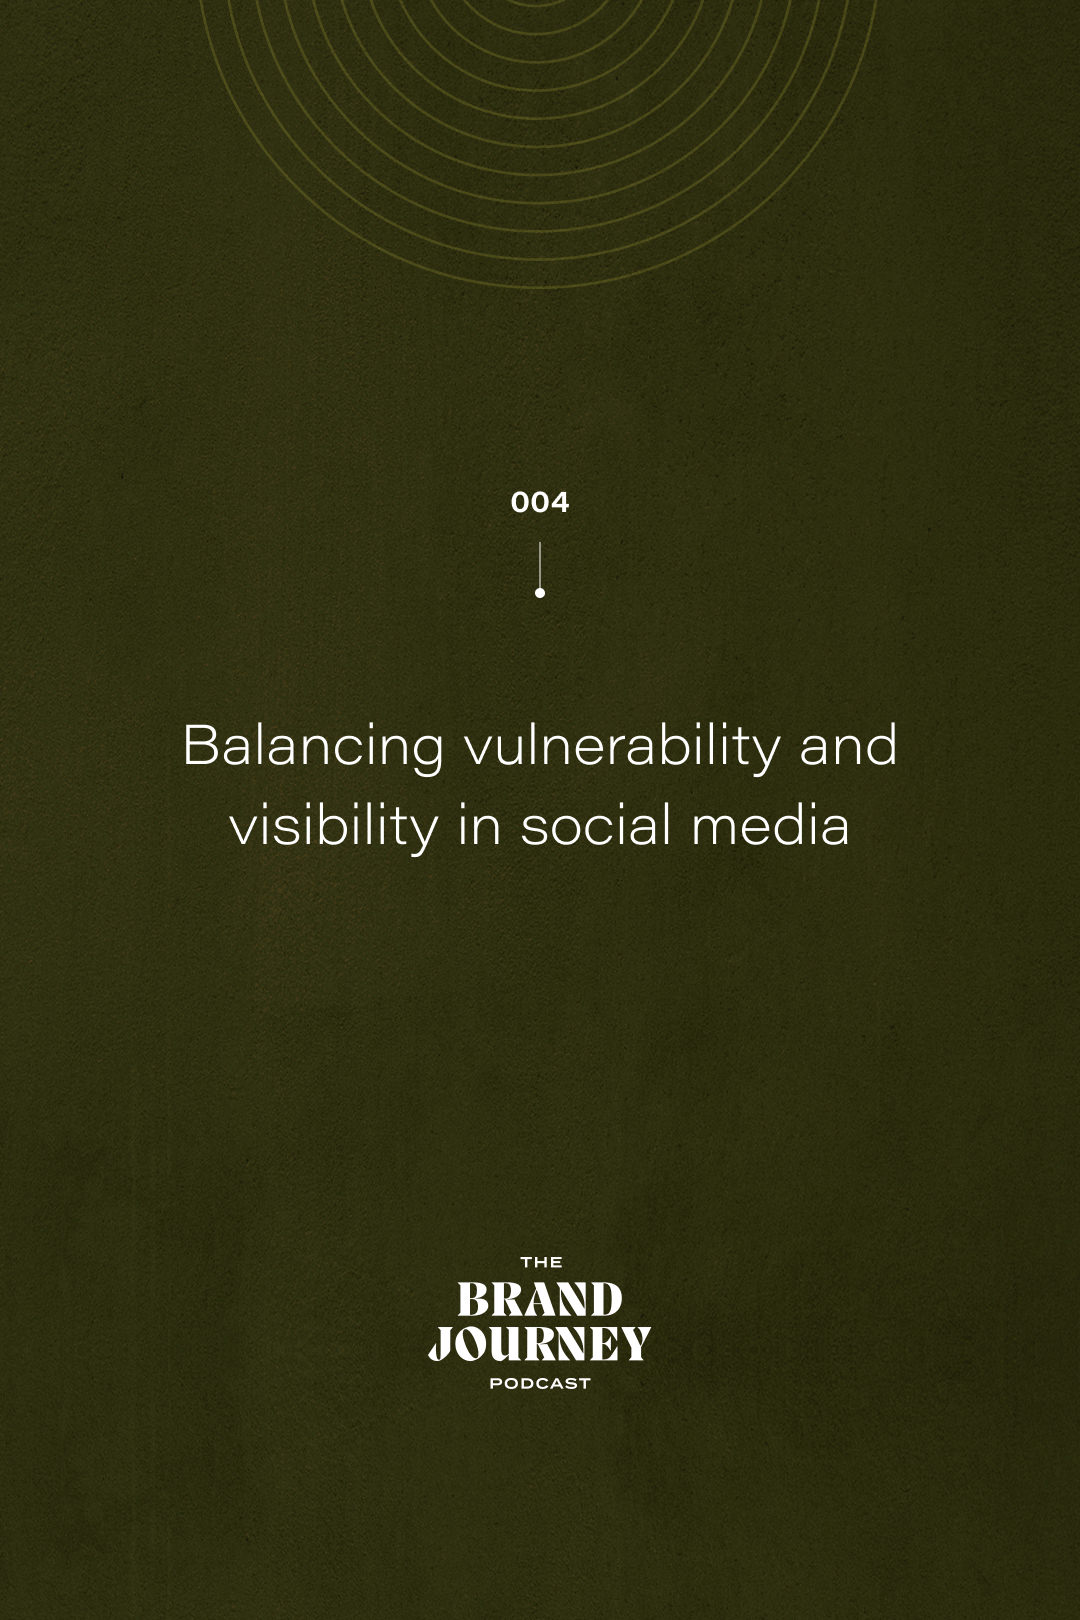 Balancing vulnerability and visibility in social media